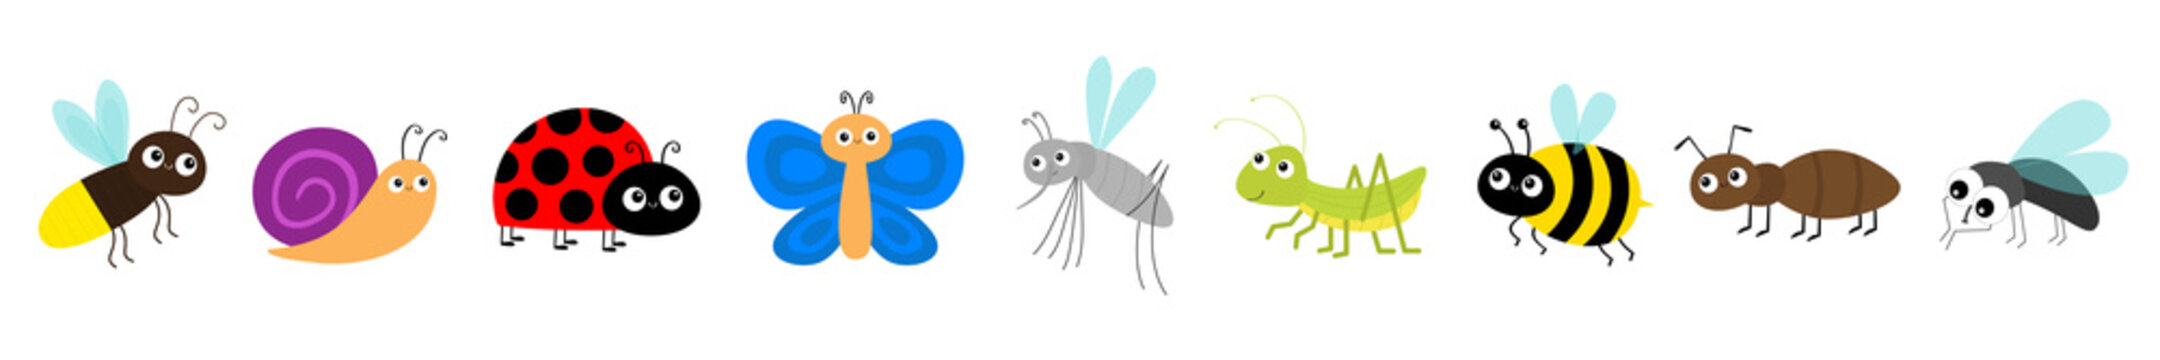 Grasshopper, fly, firefly, ant, mosquito, bee bumblebee, butterfly, snail cochlea, lady bug ladybird ladybug. Cute cartoon kawaii flying insect icon line set. Flat design. White background